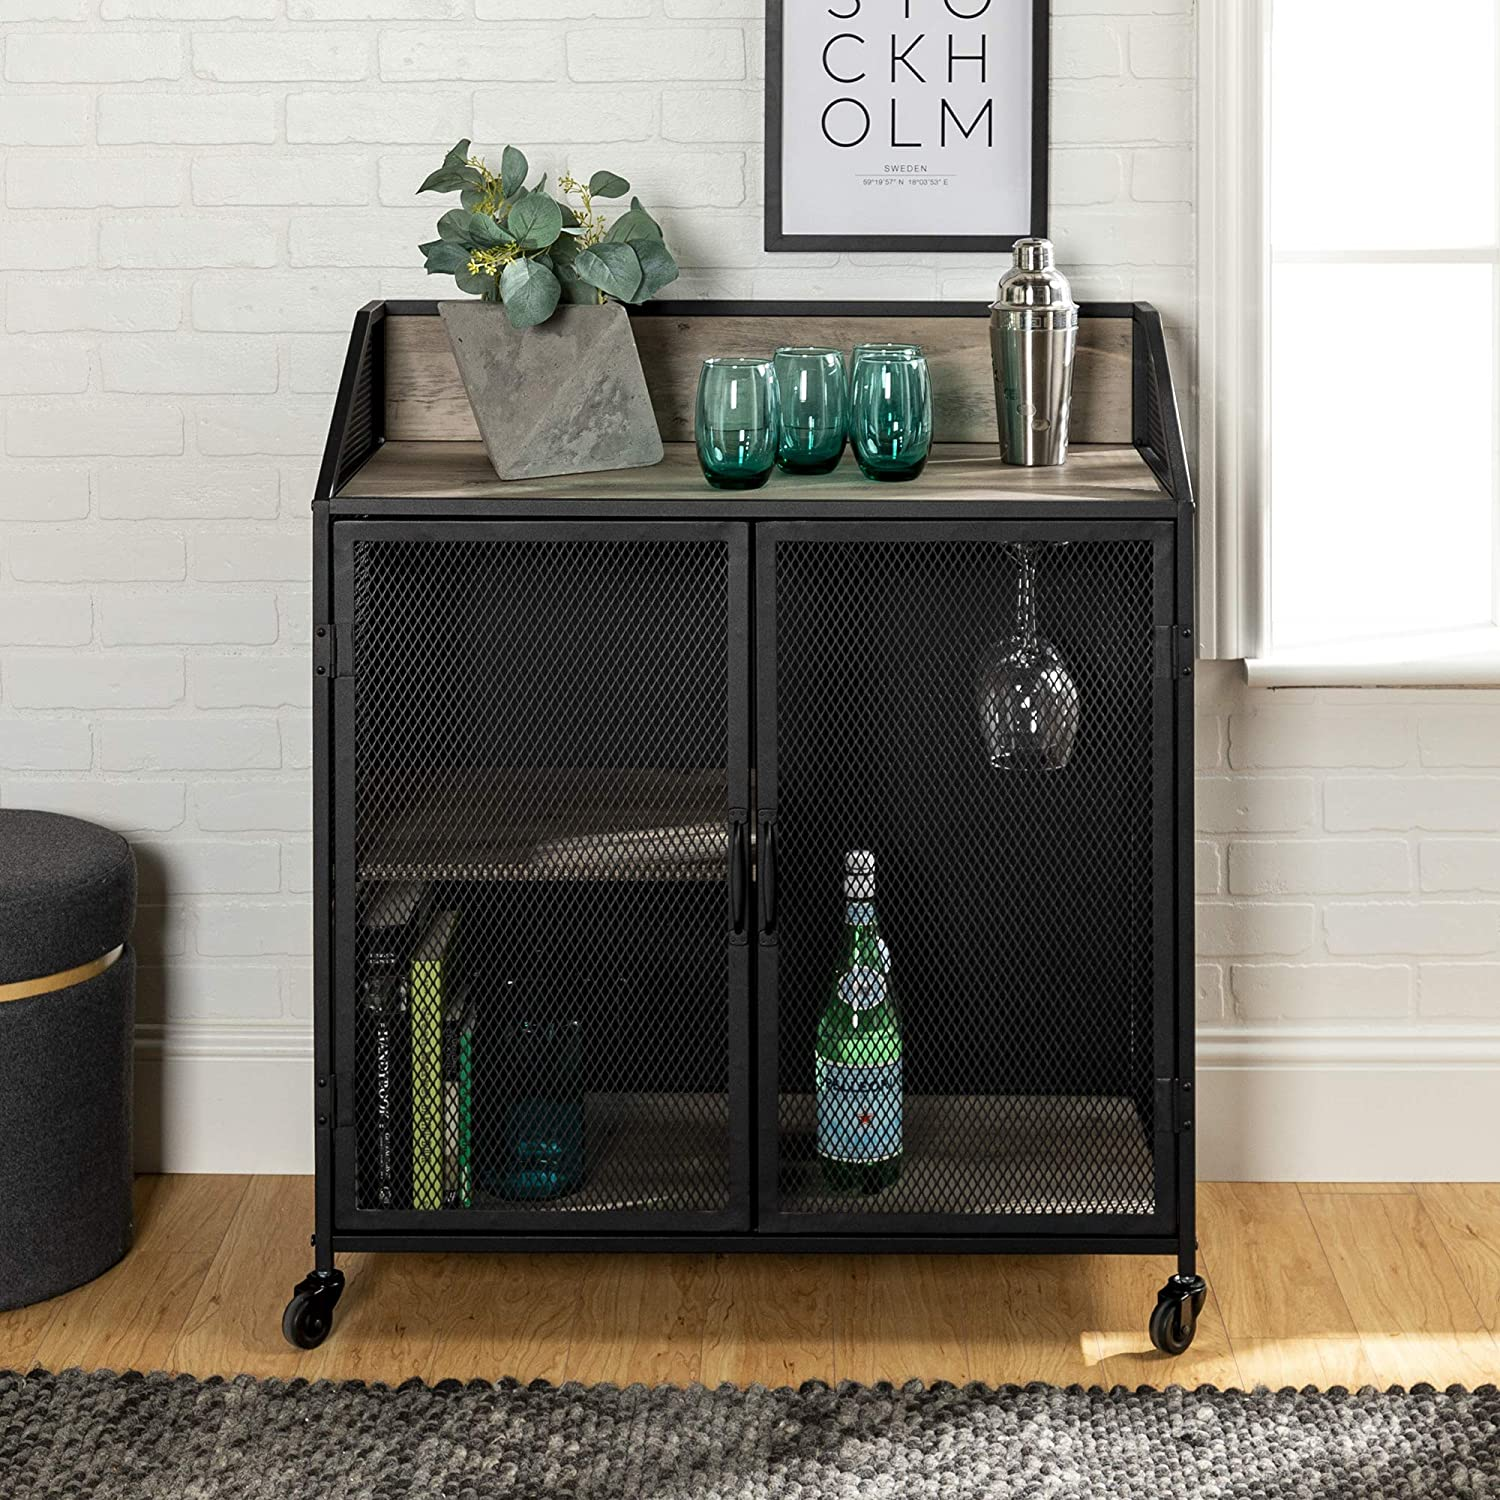 Enjoy fast, free nationwide shipping!  Family owned and operated, HawkinsWoodshop.com is your one stop shop for affordable furniture.  Shop HawkinsWoodshop.com for solid wood & metal modern, traditional, contemporary, industrial, custom, rustic, and farmhouse furniture including our Elora Industrial Farmhouse Metal & Grey-Wash-Wood Bar Cabinet.